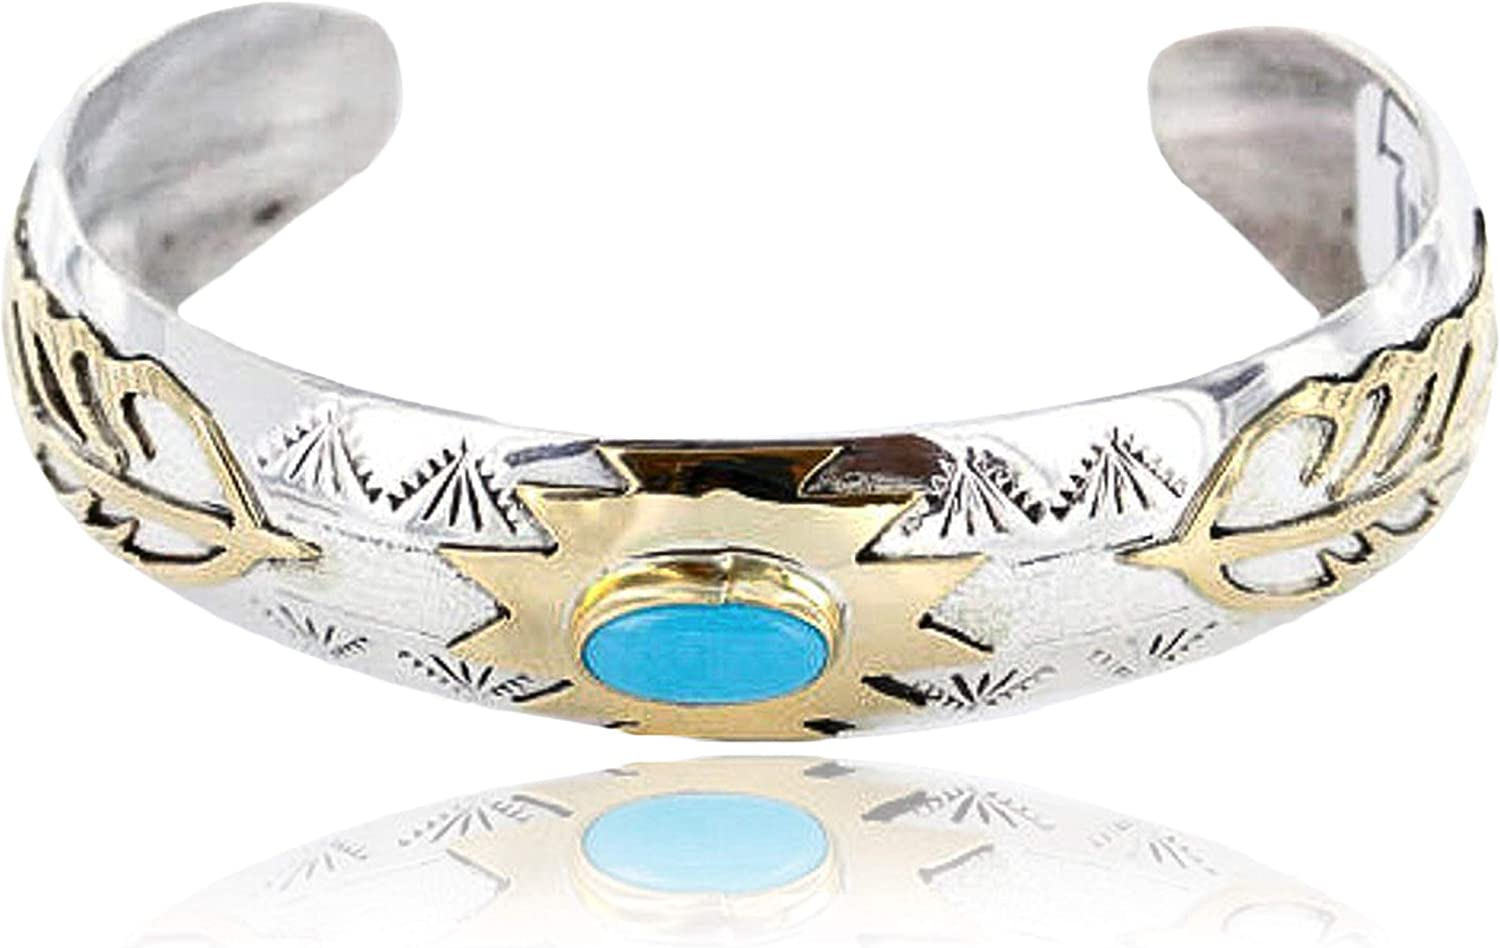 $480Tag 12ktGF Silver Feather Certified Navajo Turquoise Native Bracelet 390812961164 Made by Loma Siiva 71R-5RboaHLUL1500_